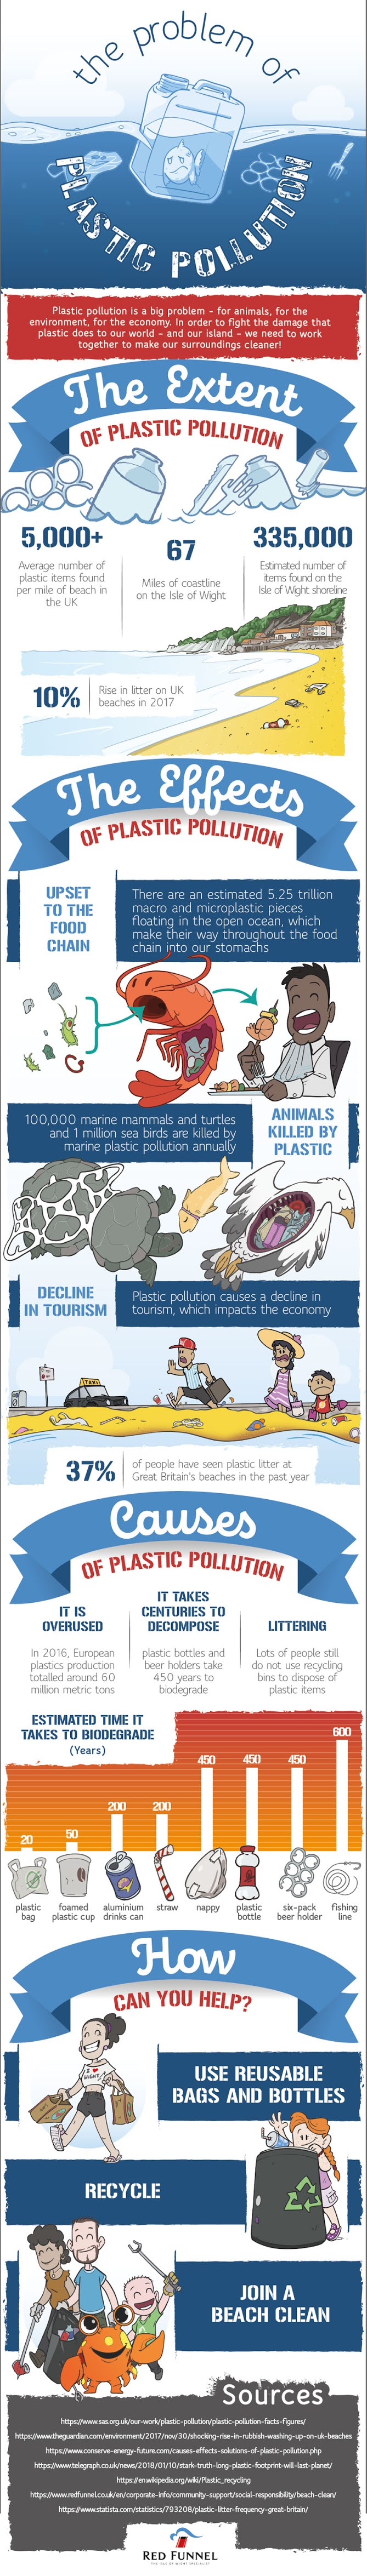 The Problem of Plastic Pollution #infographic #Environment #Plastic Pollution #Plastic